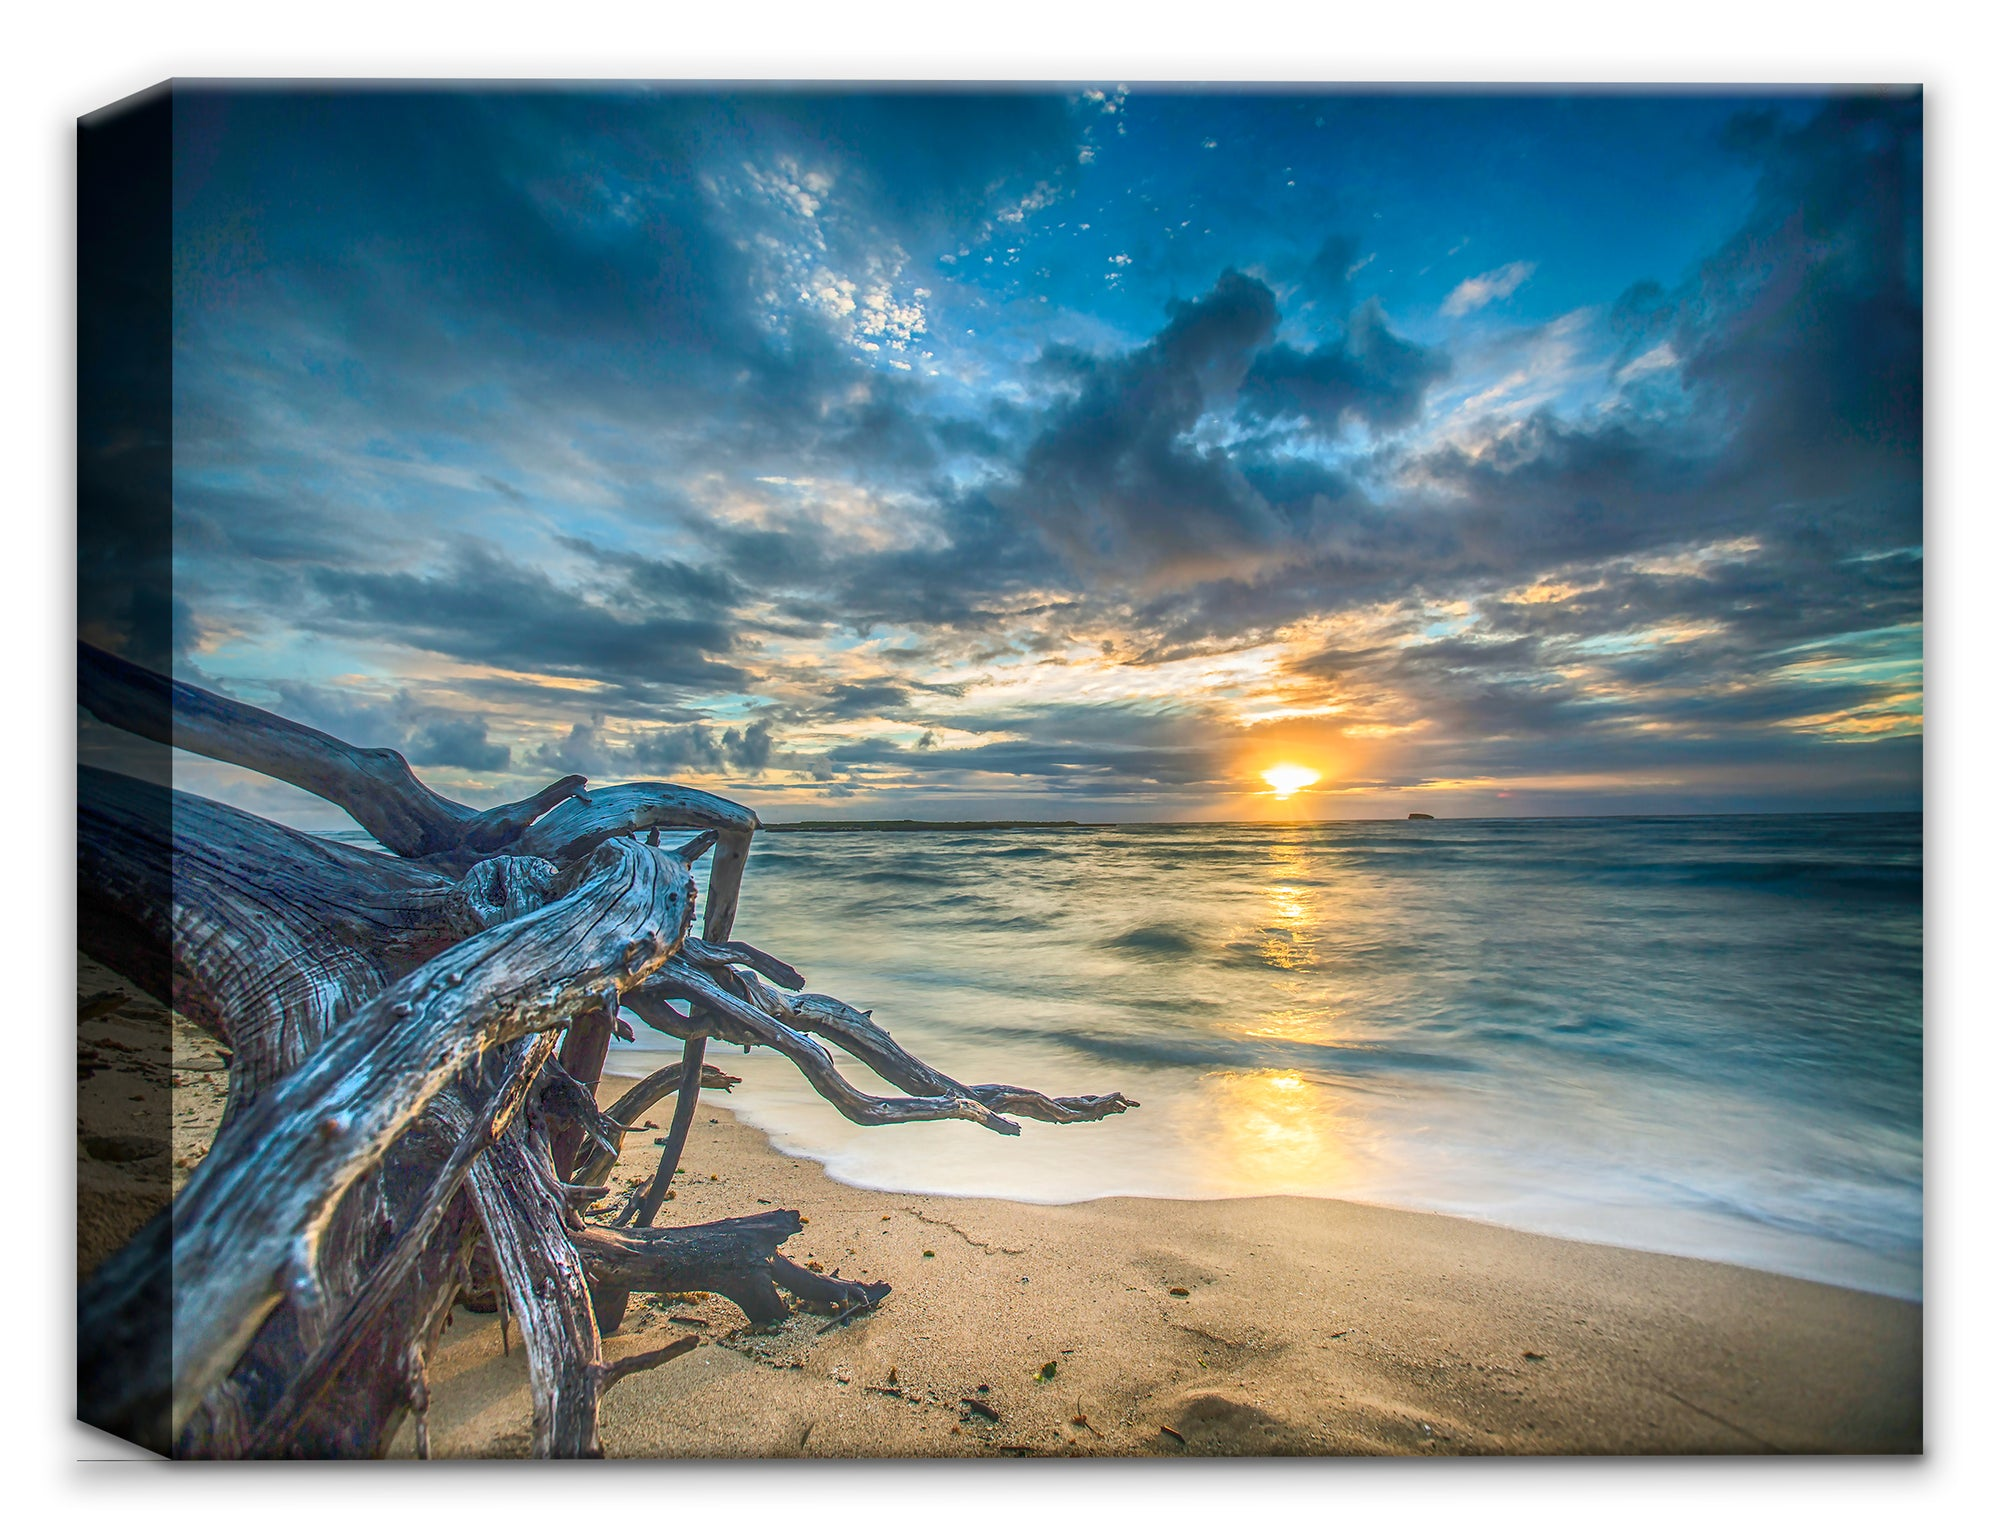 Driftwood, Beach & Ocean at Dawn - Fine Art Photography